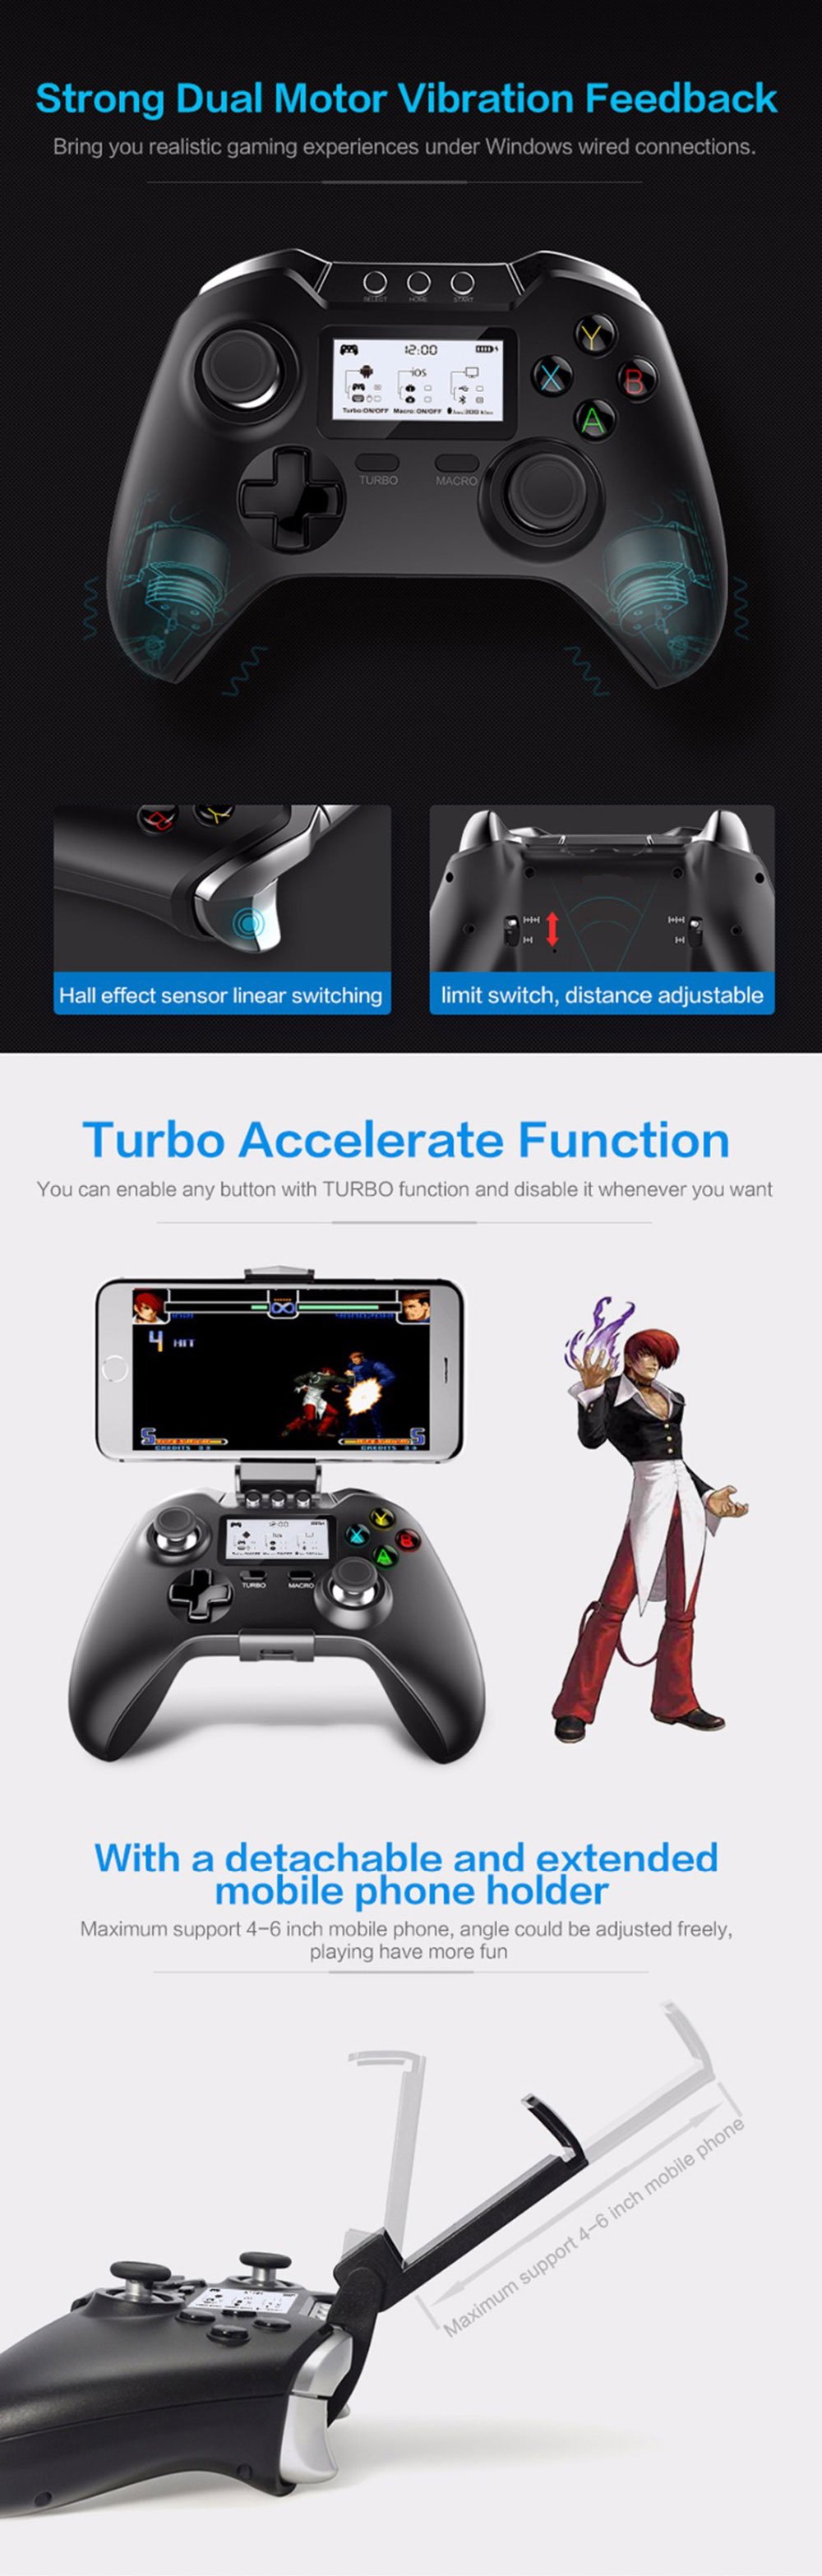 Ipega Pg 9063 Bluetooth Gamepad Smart Game Controller 2960 Mobile Wireless Gaming 30 For Android And Ios 9021 Black With Lcd Display Dual Motor Vibration